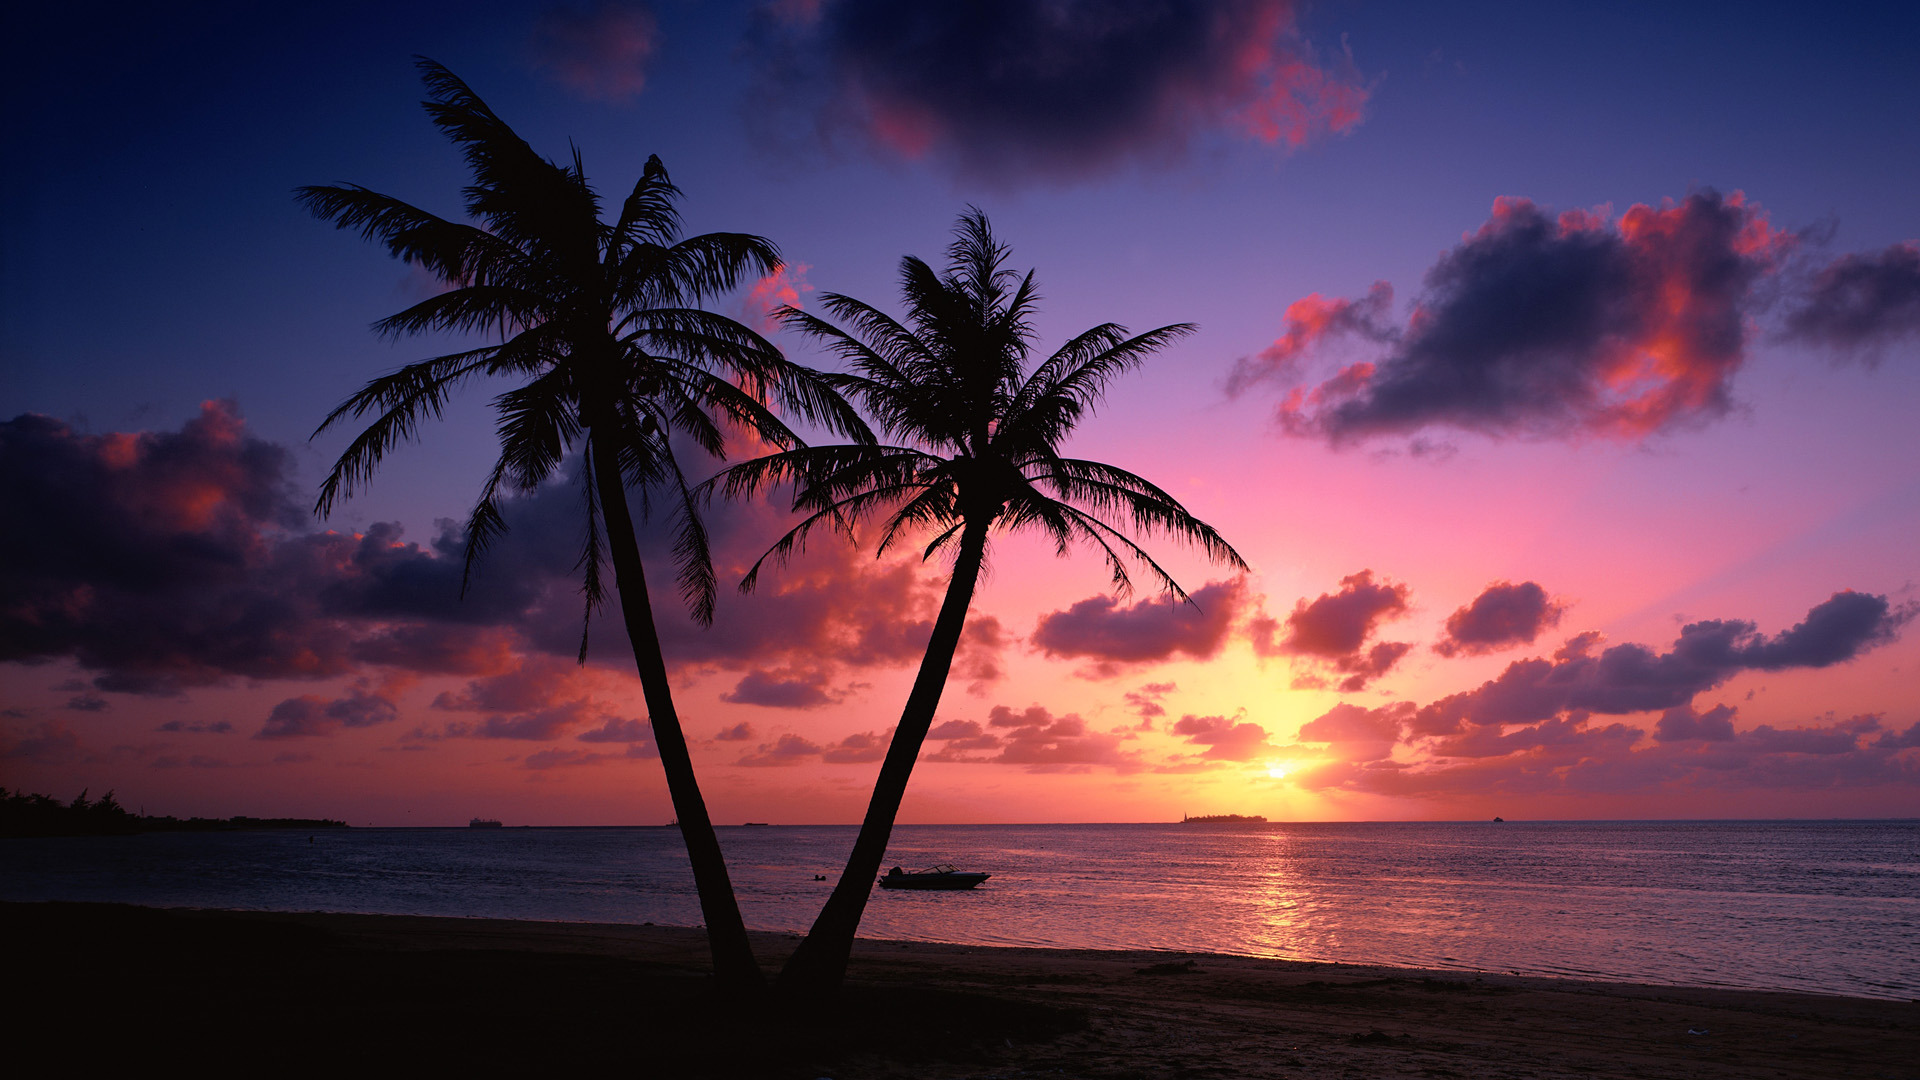 Beach Sunset Landscape